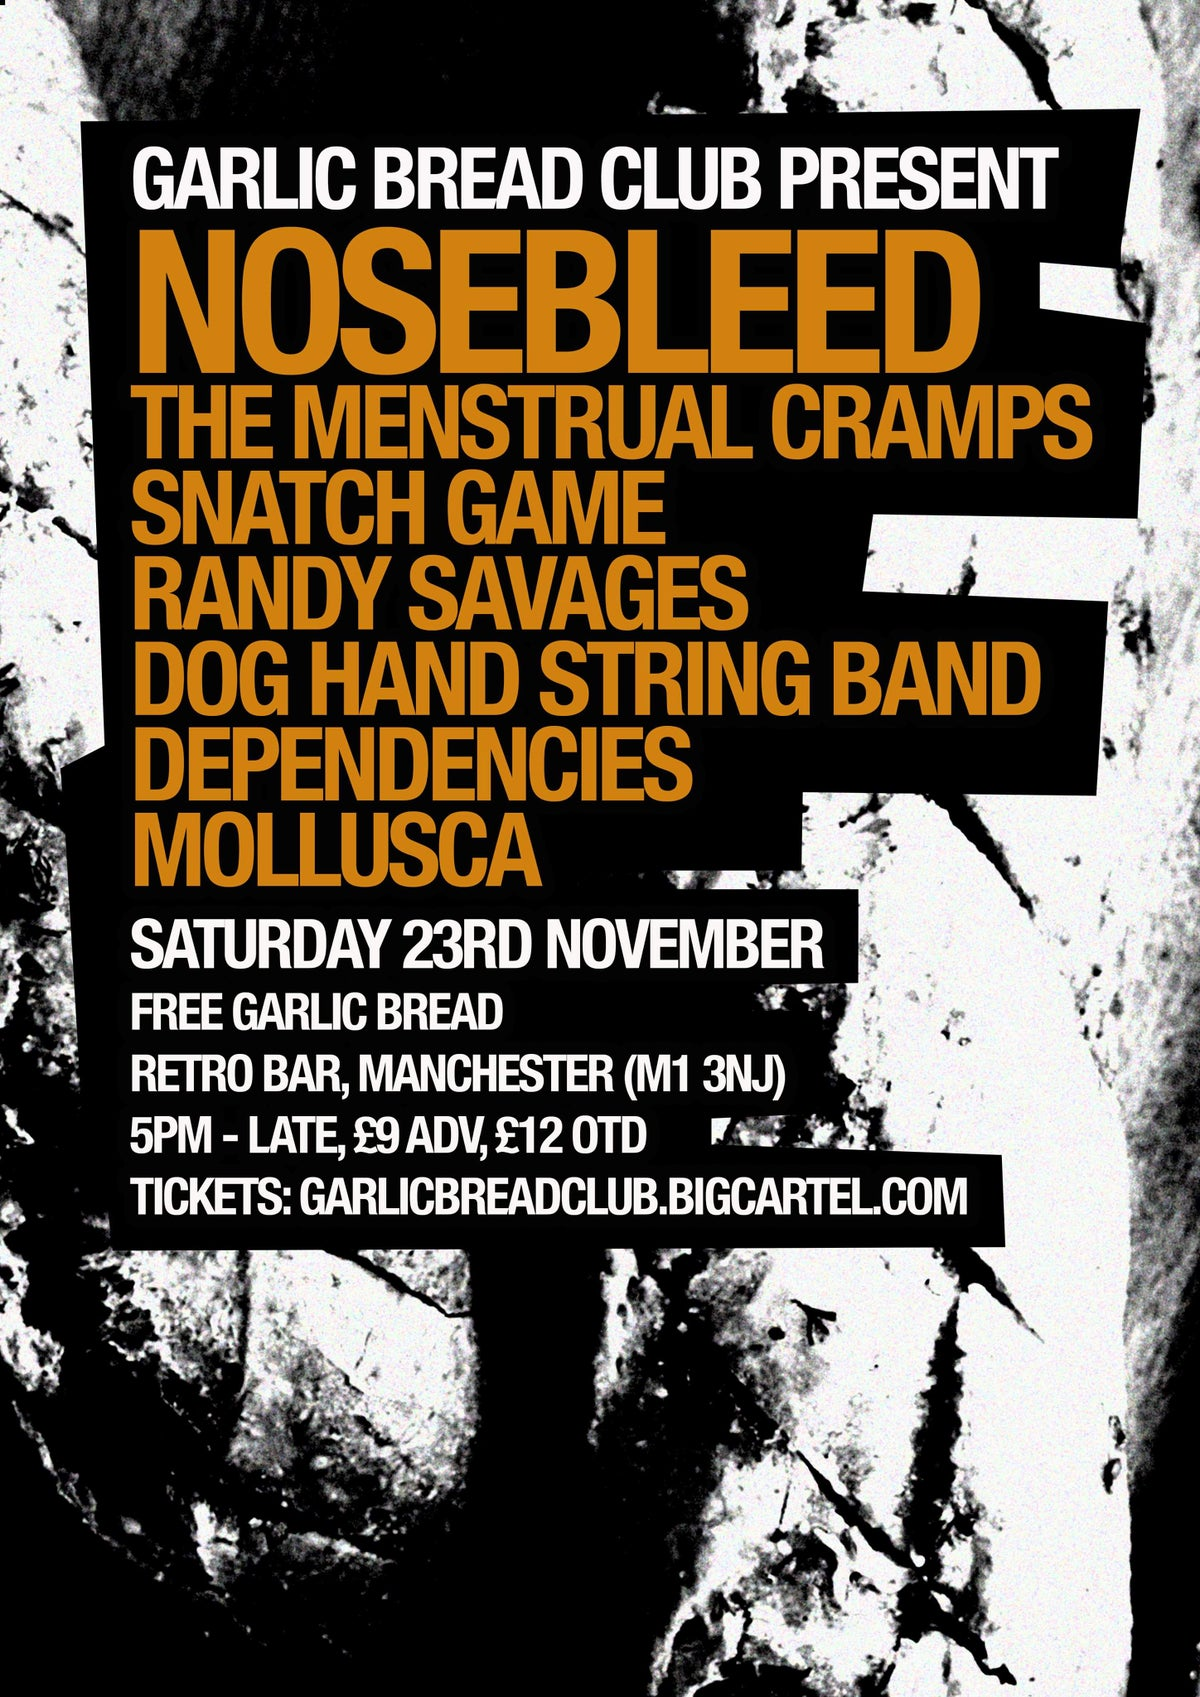 Image of GBC 2: Nosebleed, Menstrual Cramps and more Ticket